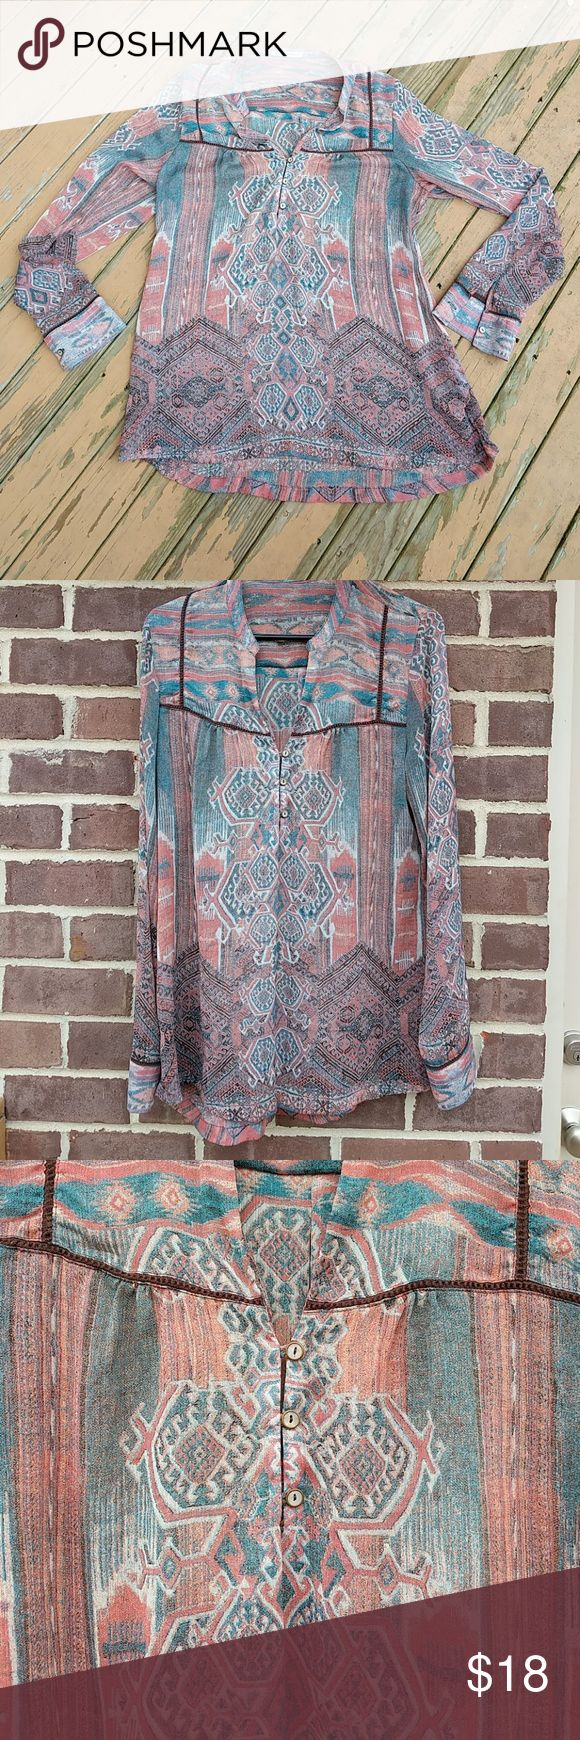 """Maurice's aztec top Lightweight and airy beautiful Aztec top  turquoise Blue and Mauve & peachy colors run vibrant. V neck style 100% polyester approximate 29"""" length,  25"""" sleeve, 20"""" pit to pit. Asymmetrical Maurices Tops Blouses"""